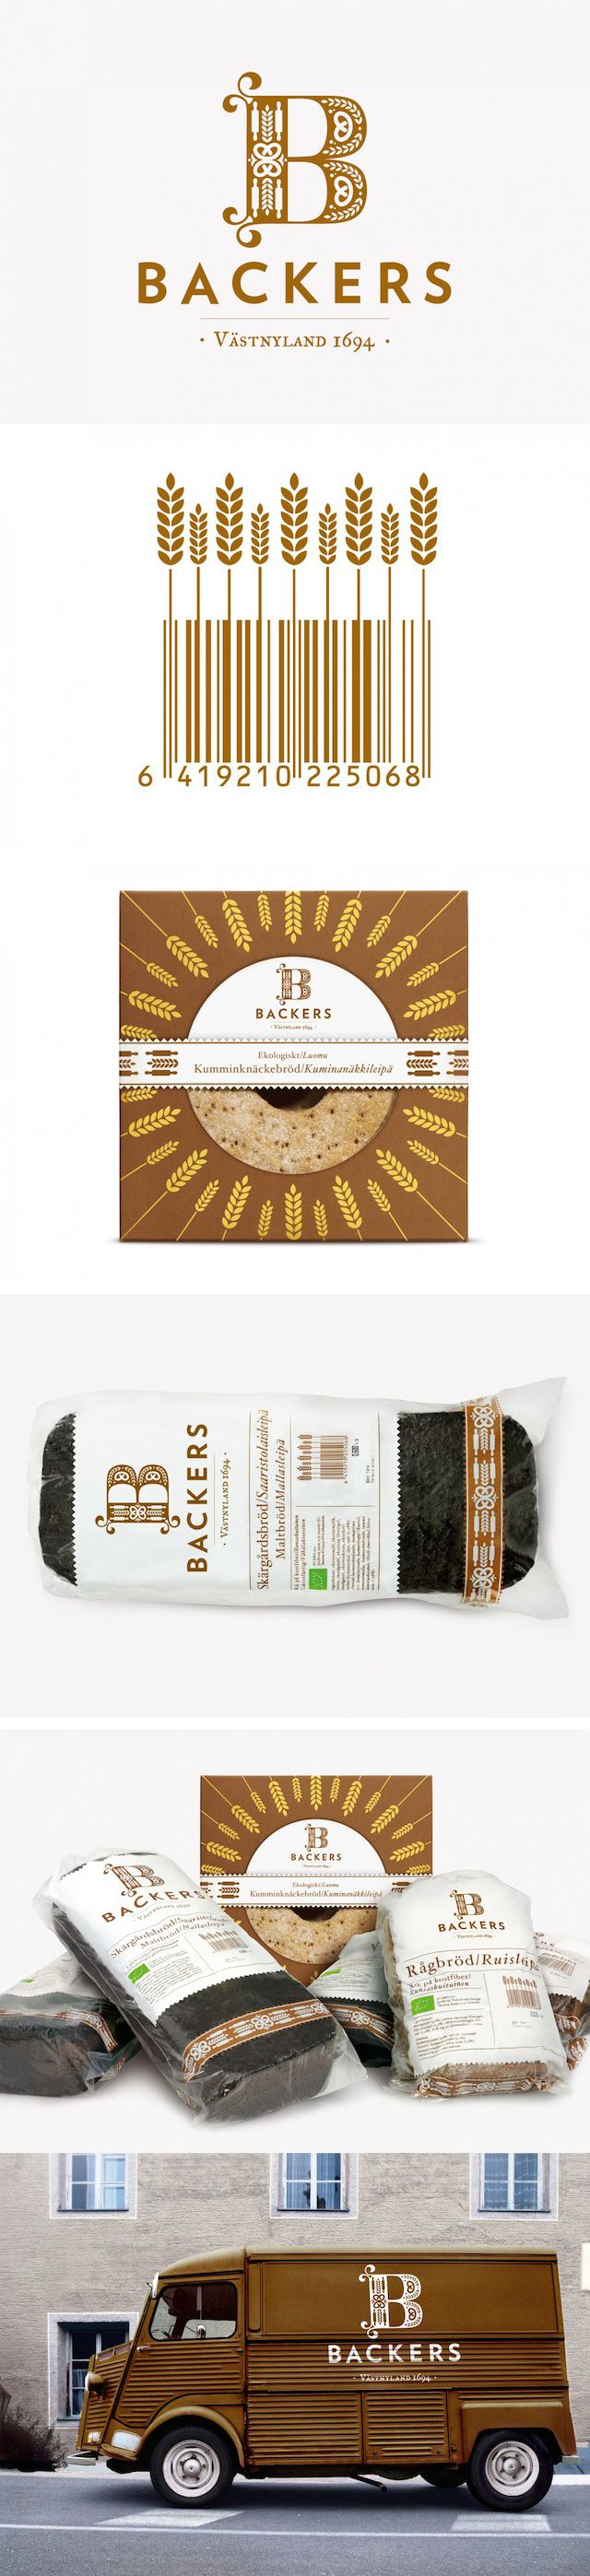 Backers yummy bread #identity #packaging #branding PD